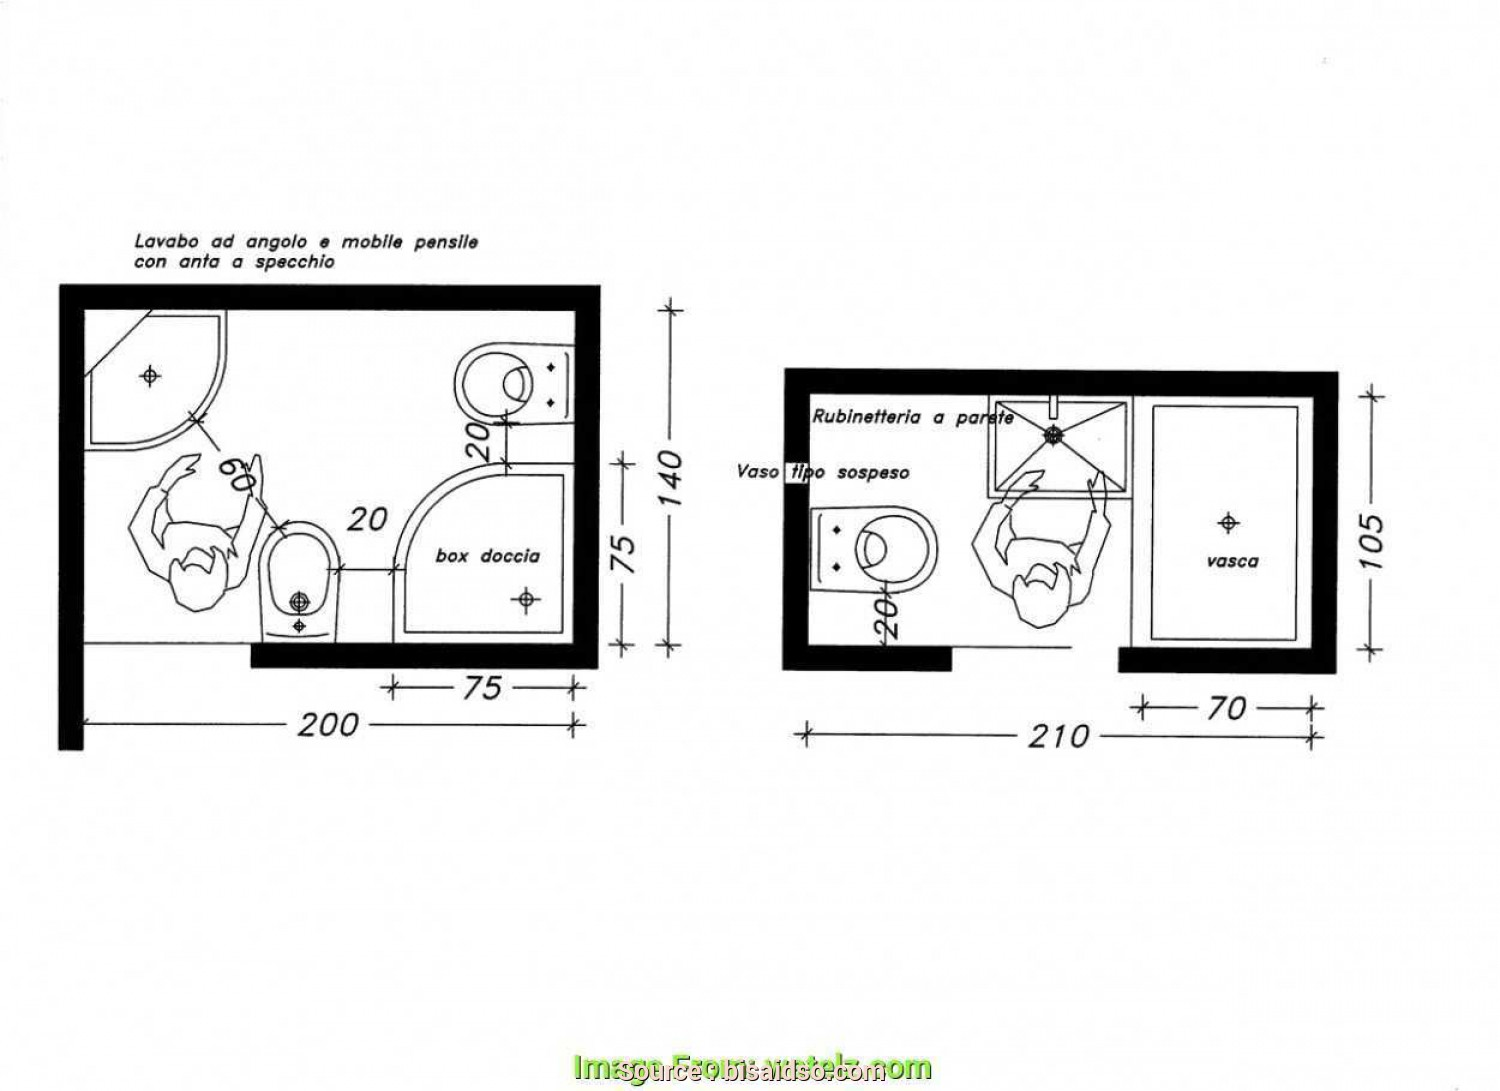 Letto Circolare Dwg, Rustico Vasca, Archweb Beautiful Wc, Dwg Great Cheap Plan Wc Handicap With Plan Wc Handicap